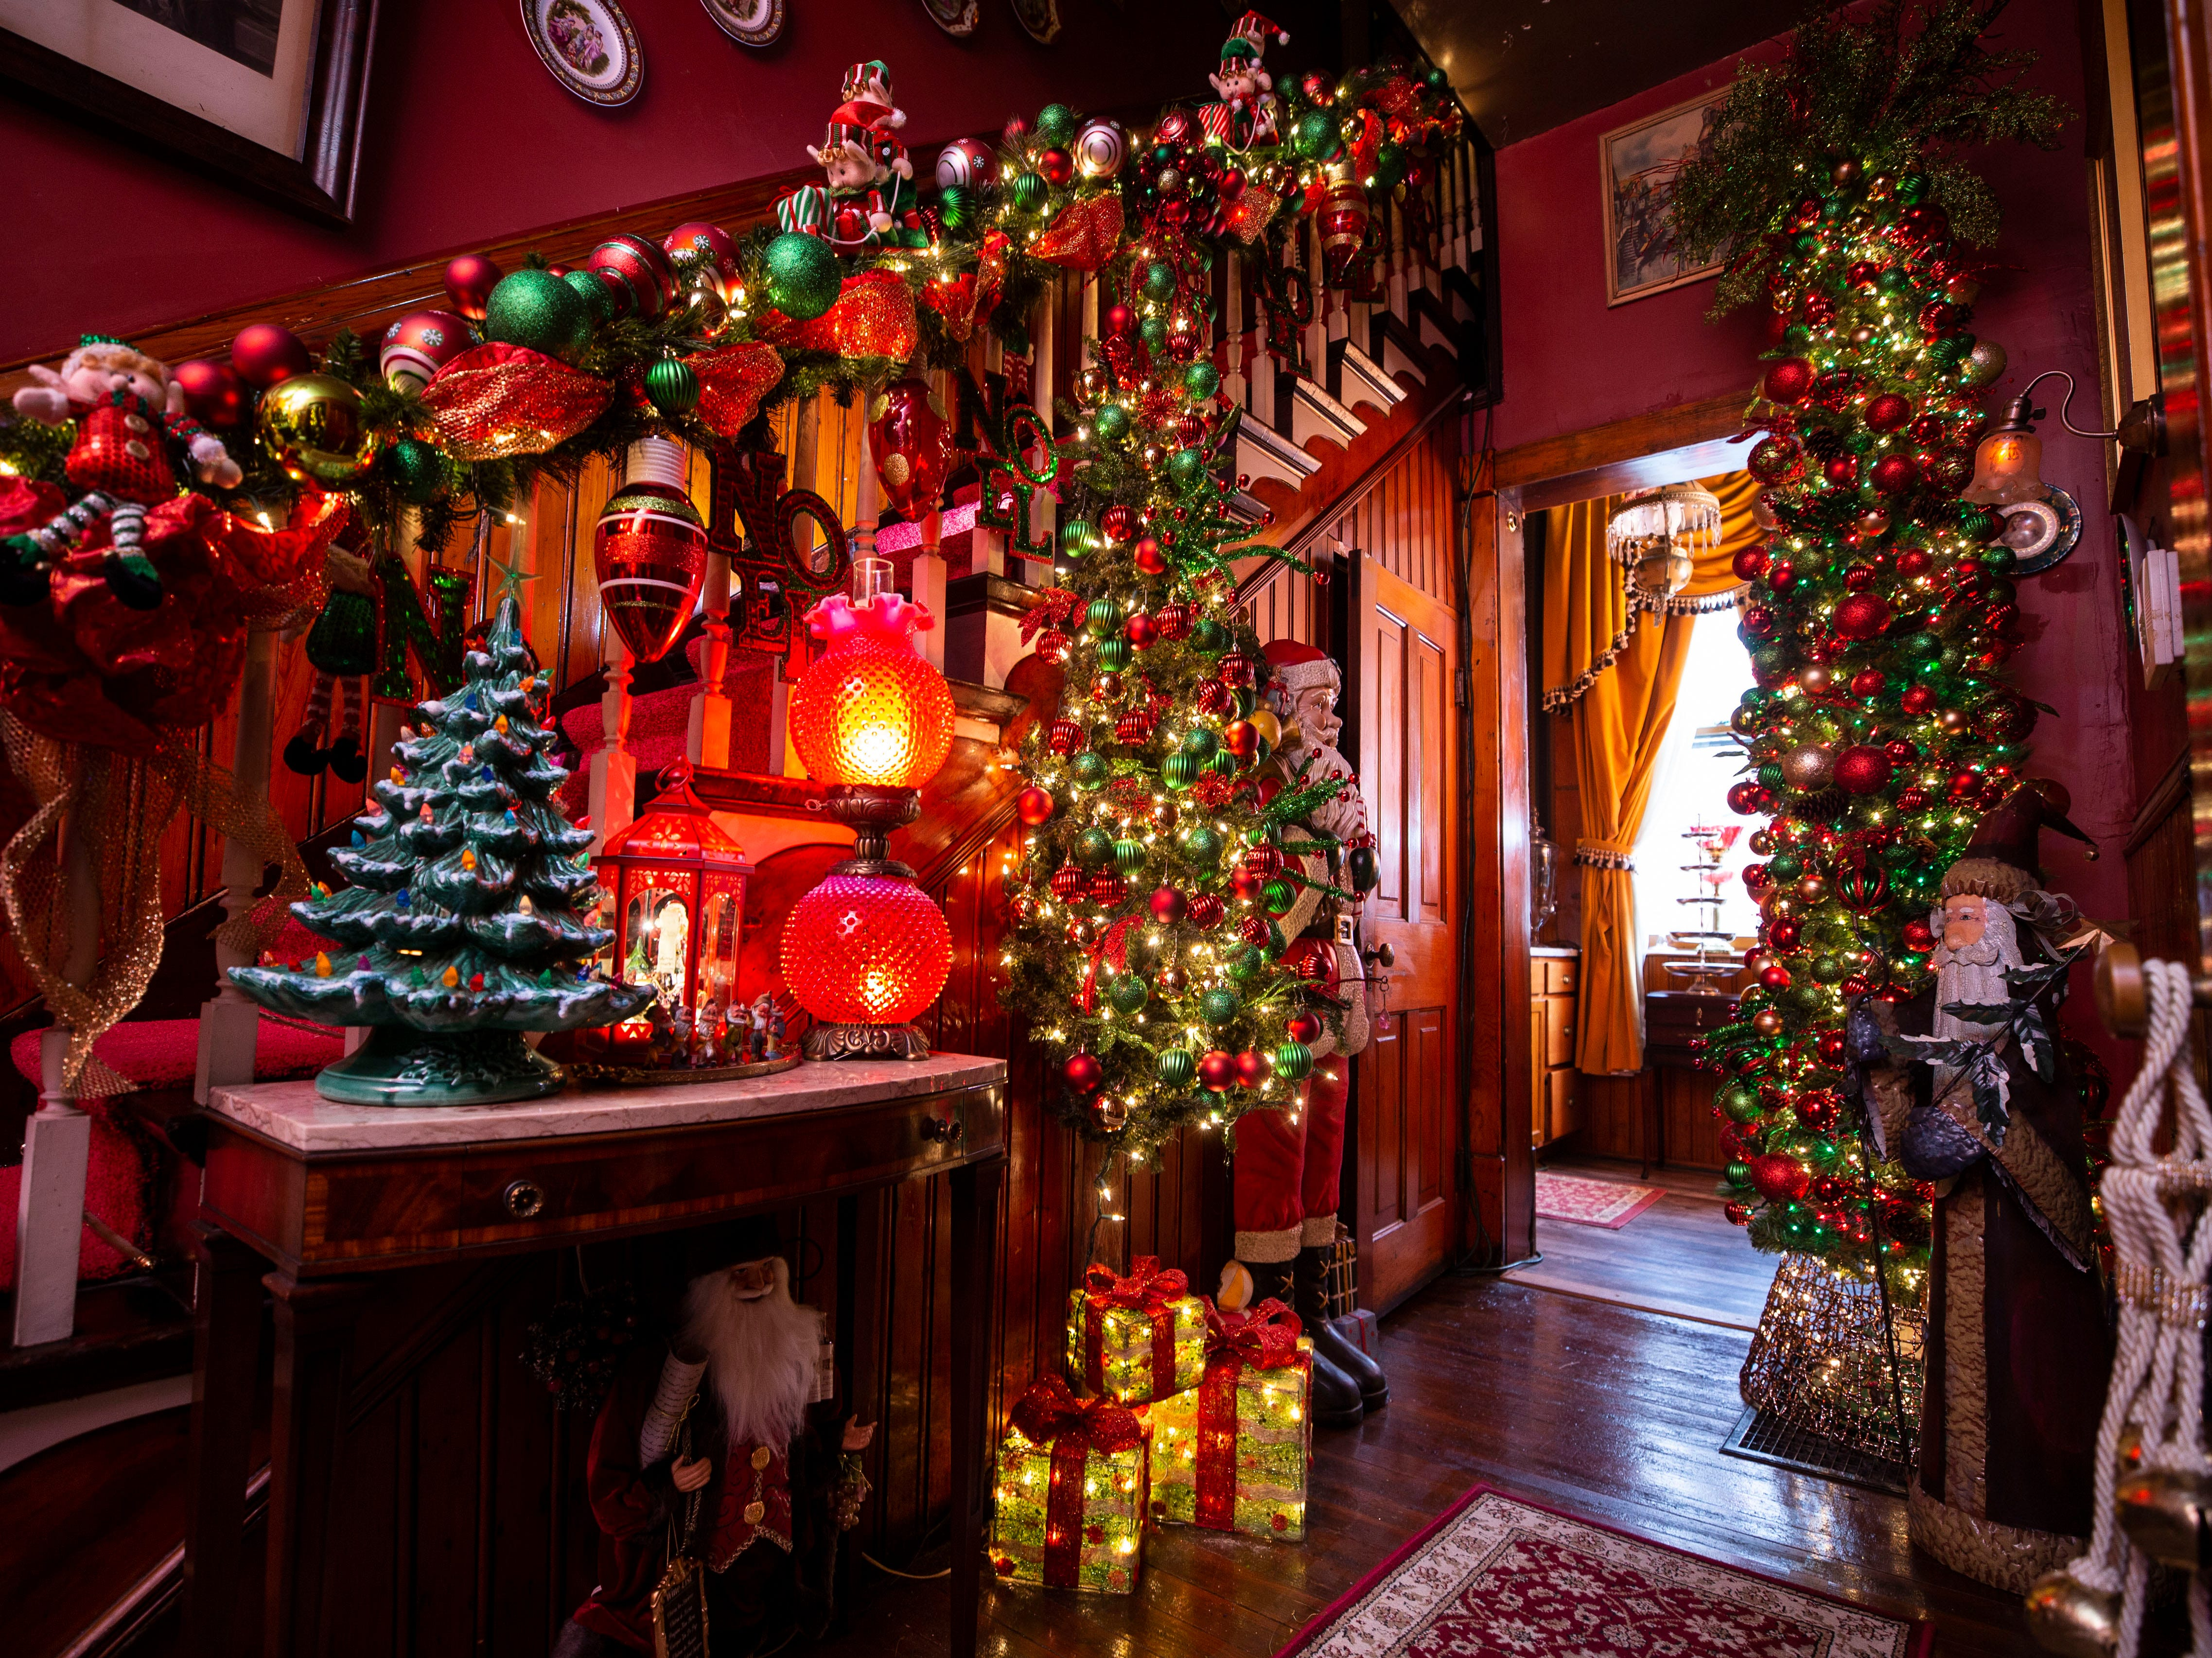 """""""If it's good craftsmanship, and it's pretty it goes well with these homes,"""" said David Brown. The second staircase has hundreds of ornaments and Christmas trees decorate the small hallway that leads to the bar area. The Victorian-era, three-story home is part of the Old Louisville Holiday Home Tour."""